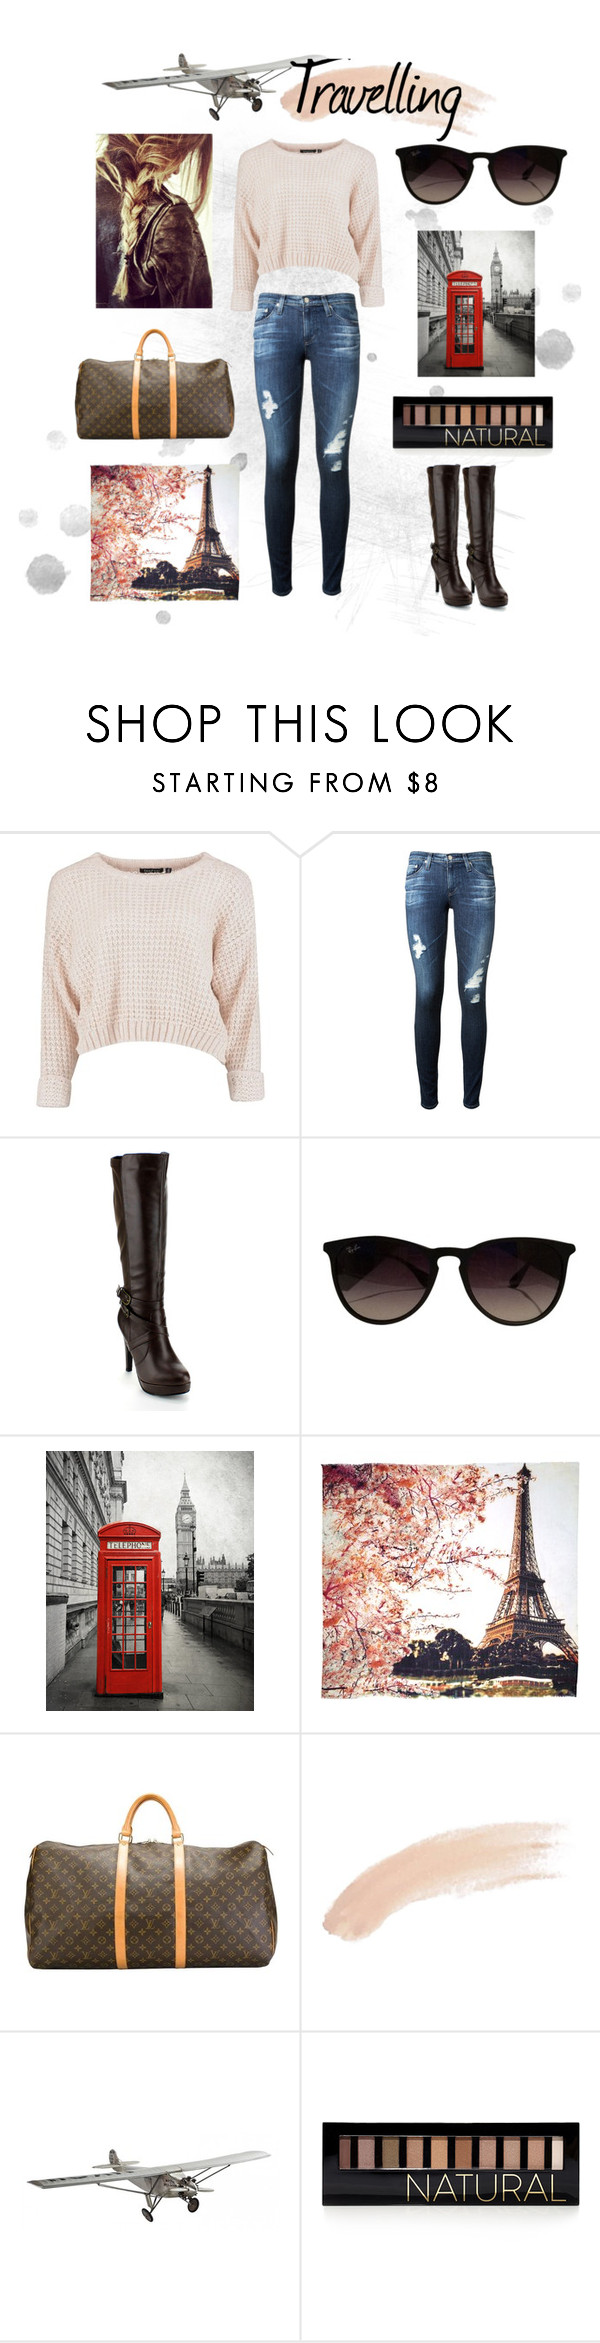 """""""Travelling"""" by niduni ❤ liked on Polyvore featuring AG Adriano Goldschmied, Forever Collectibles, Ray-Ban, Fay et Fille, Louis Vuitton, Topshop, AM-Living and Forever 21"""